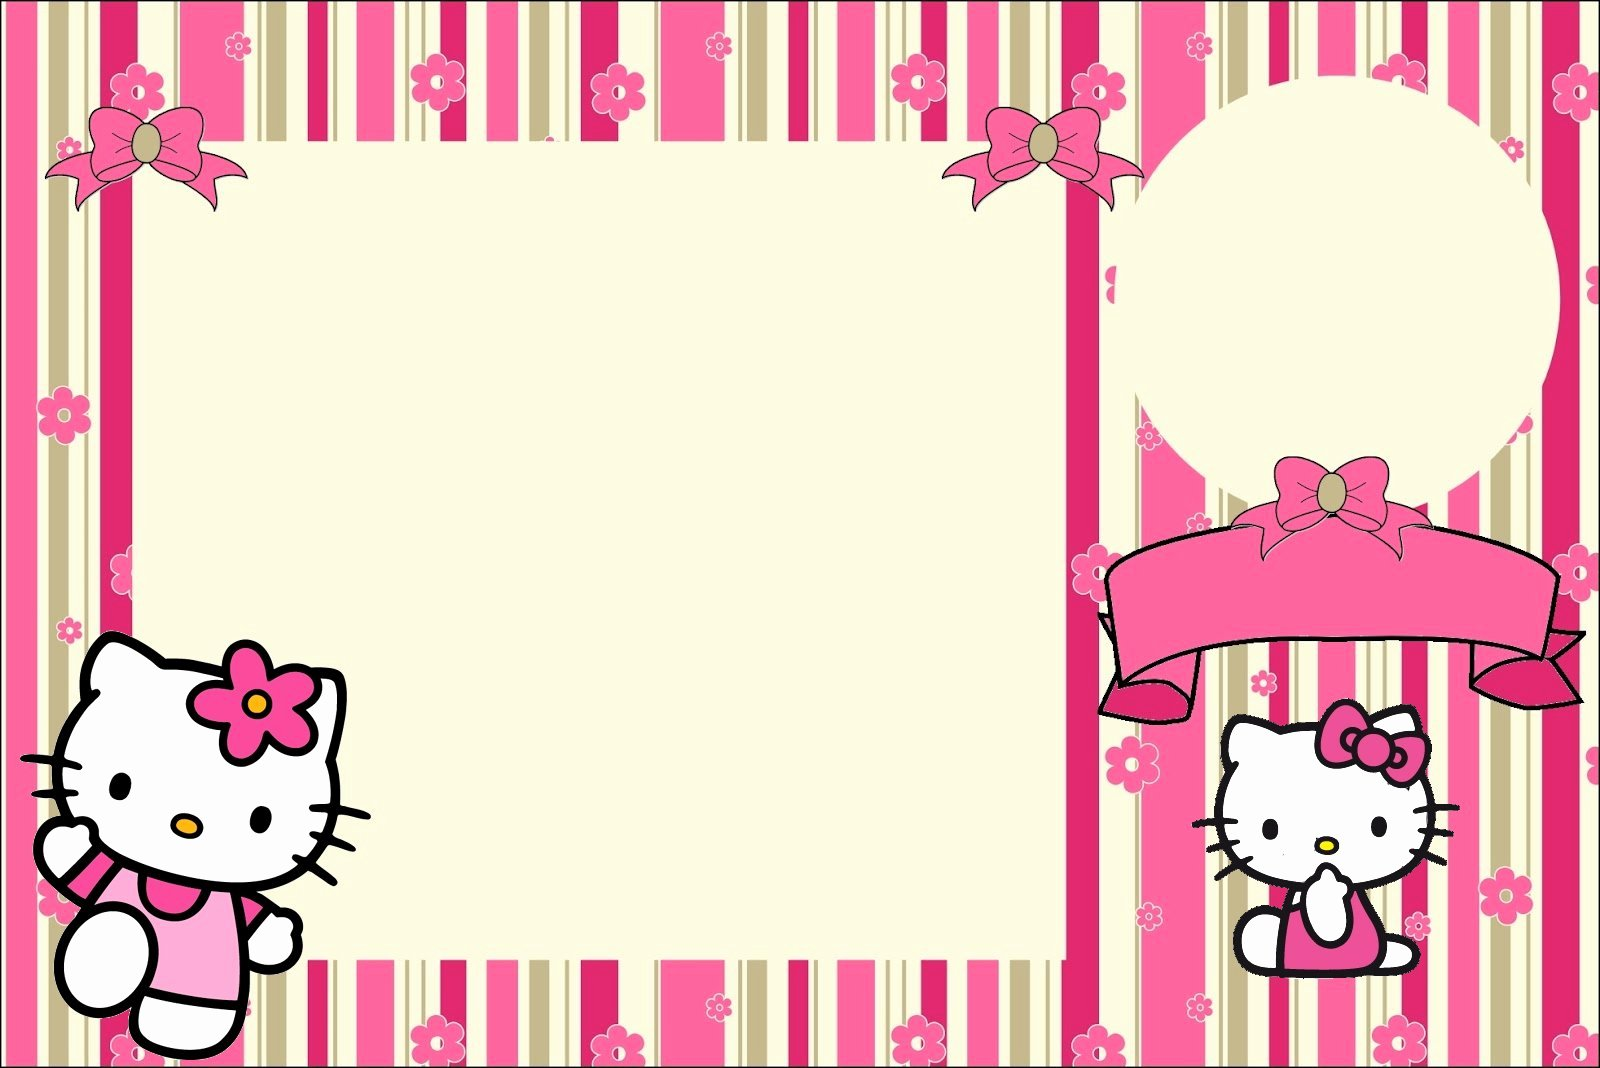 Hello Kitty Invite Template Unique Hello Kitty with Flowers Free Printable Invitations